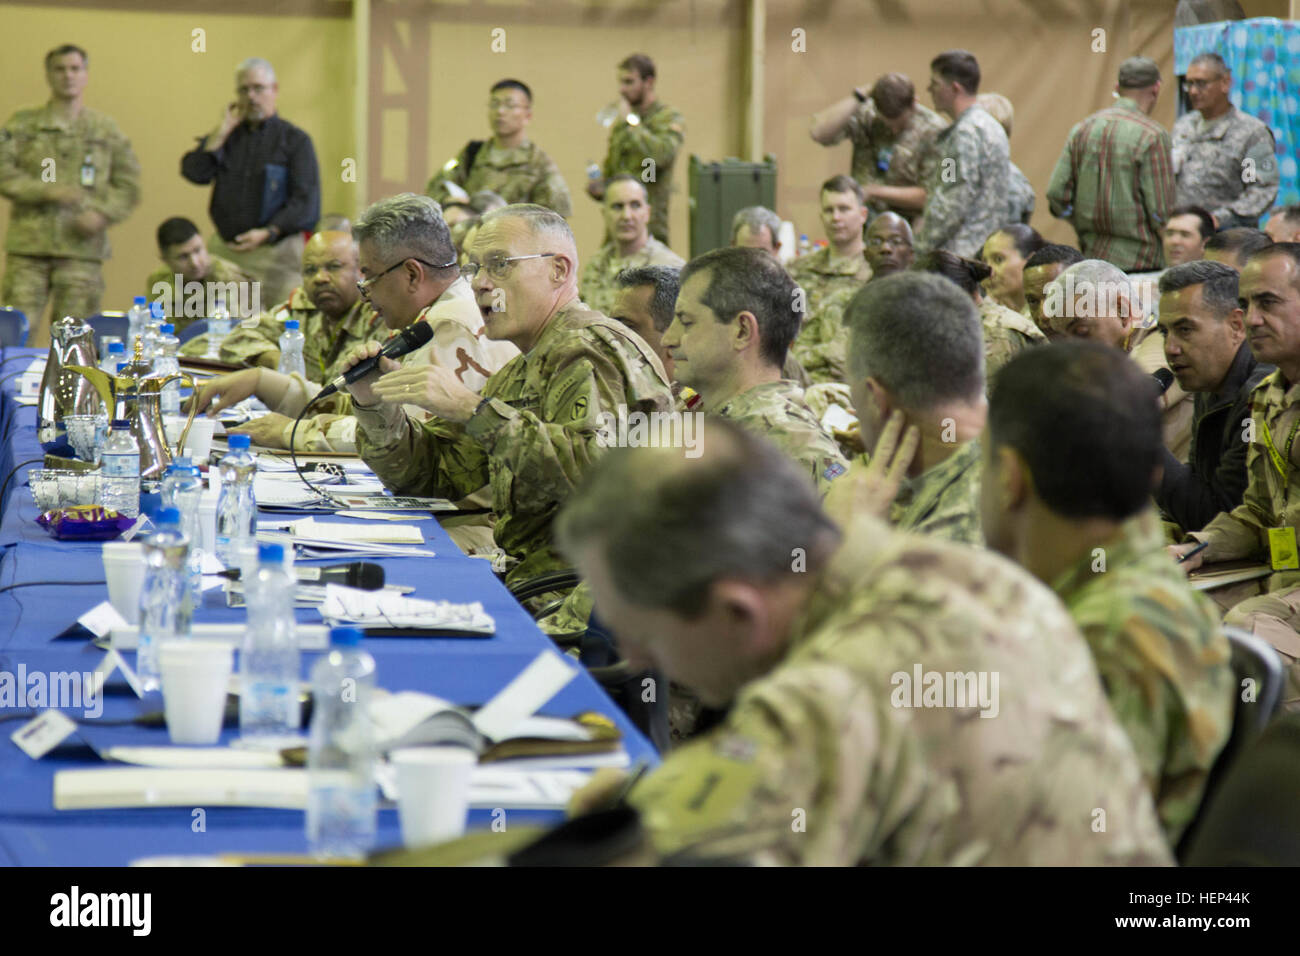 James l terry commanding general of combined joint task force operation inherent resolve speaks to cjtf oir military leaders during a coalition